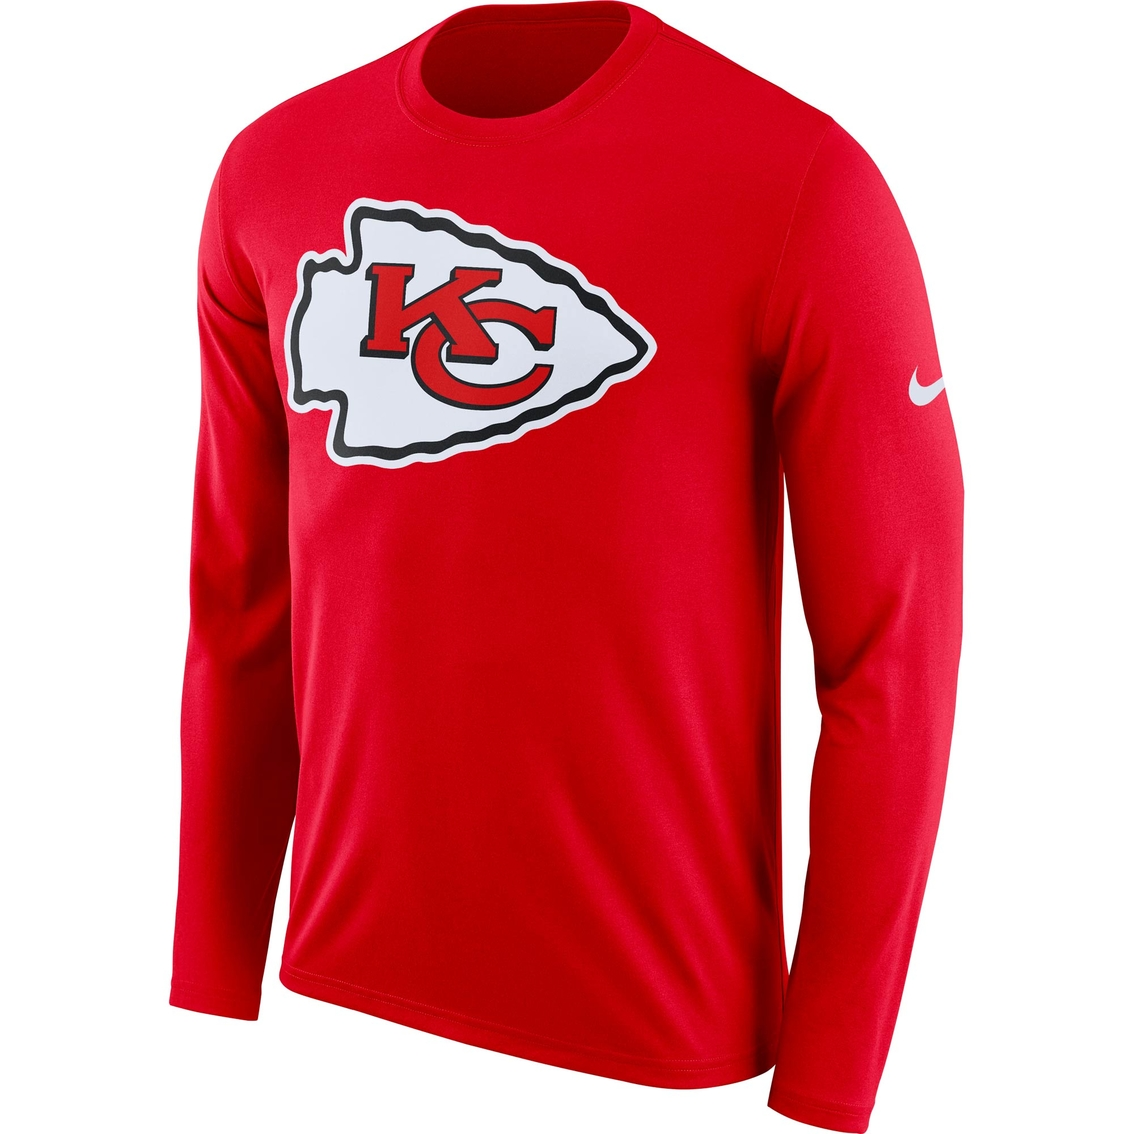 Nike Nfl Kansas City Chiefs Logo Tee Nfl Sports Outdoors Shop The Exchange